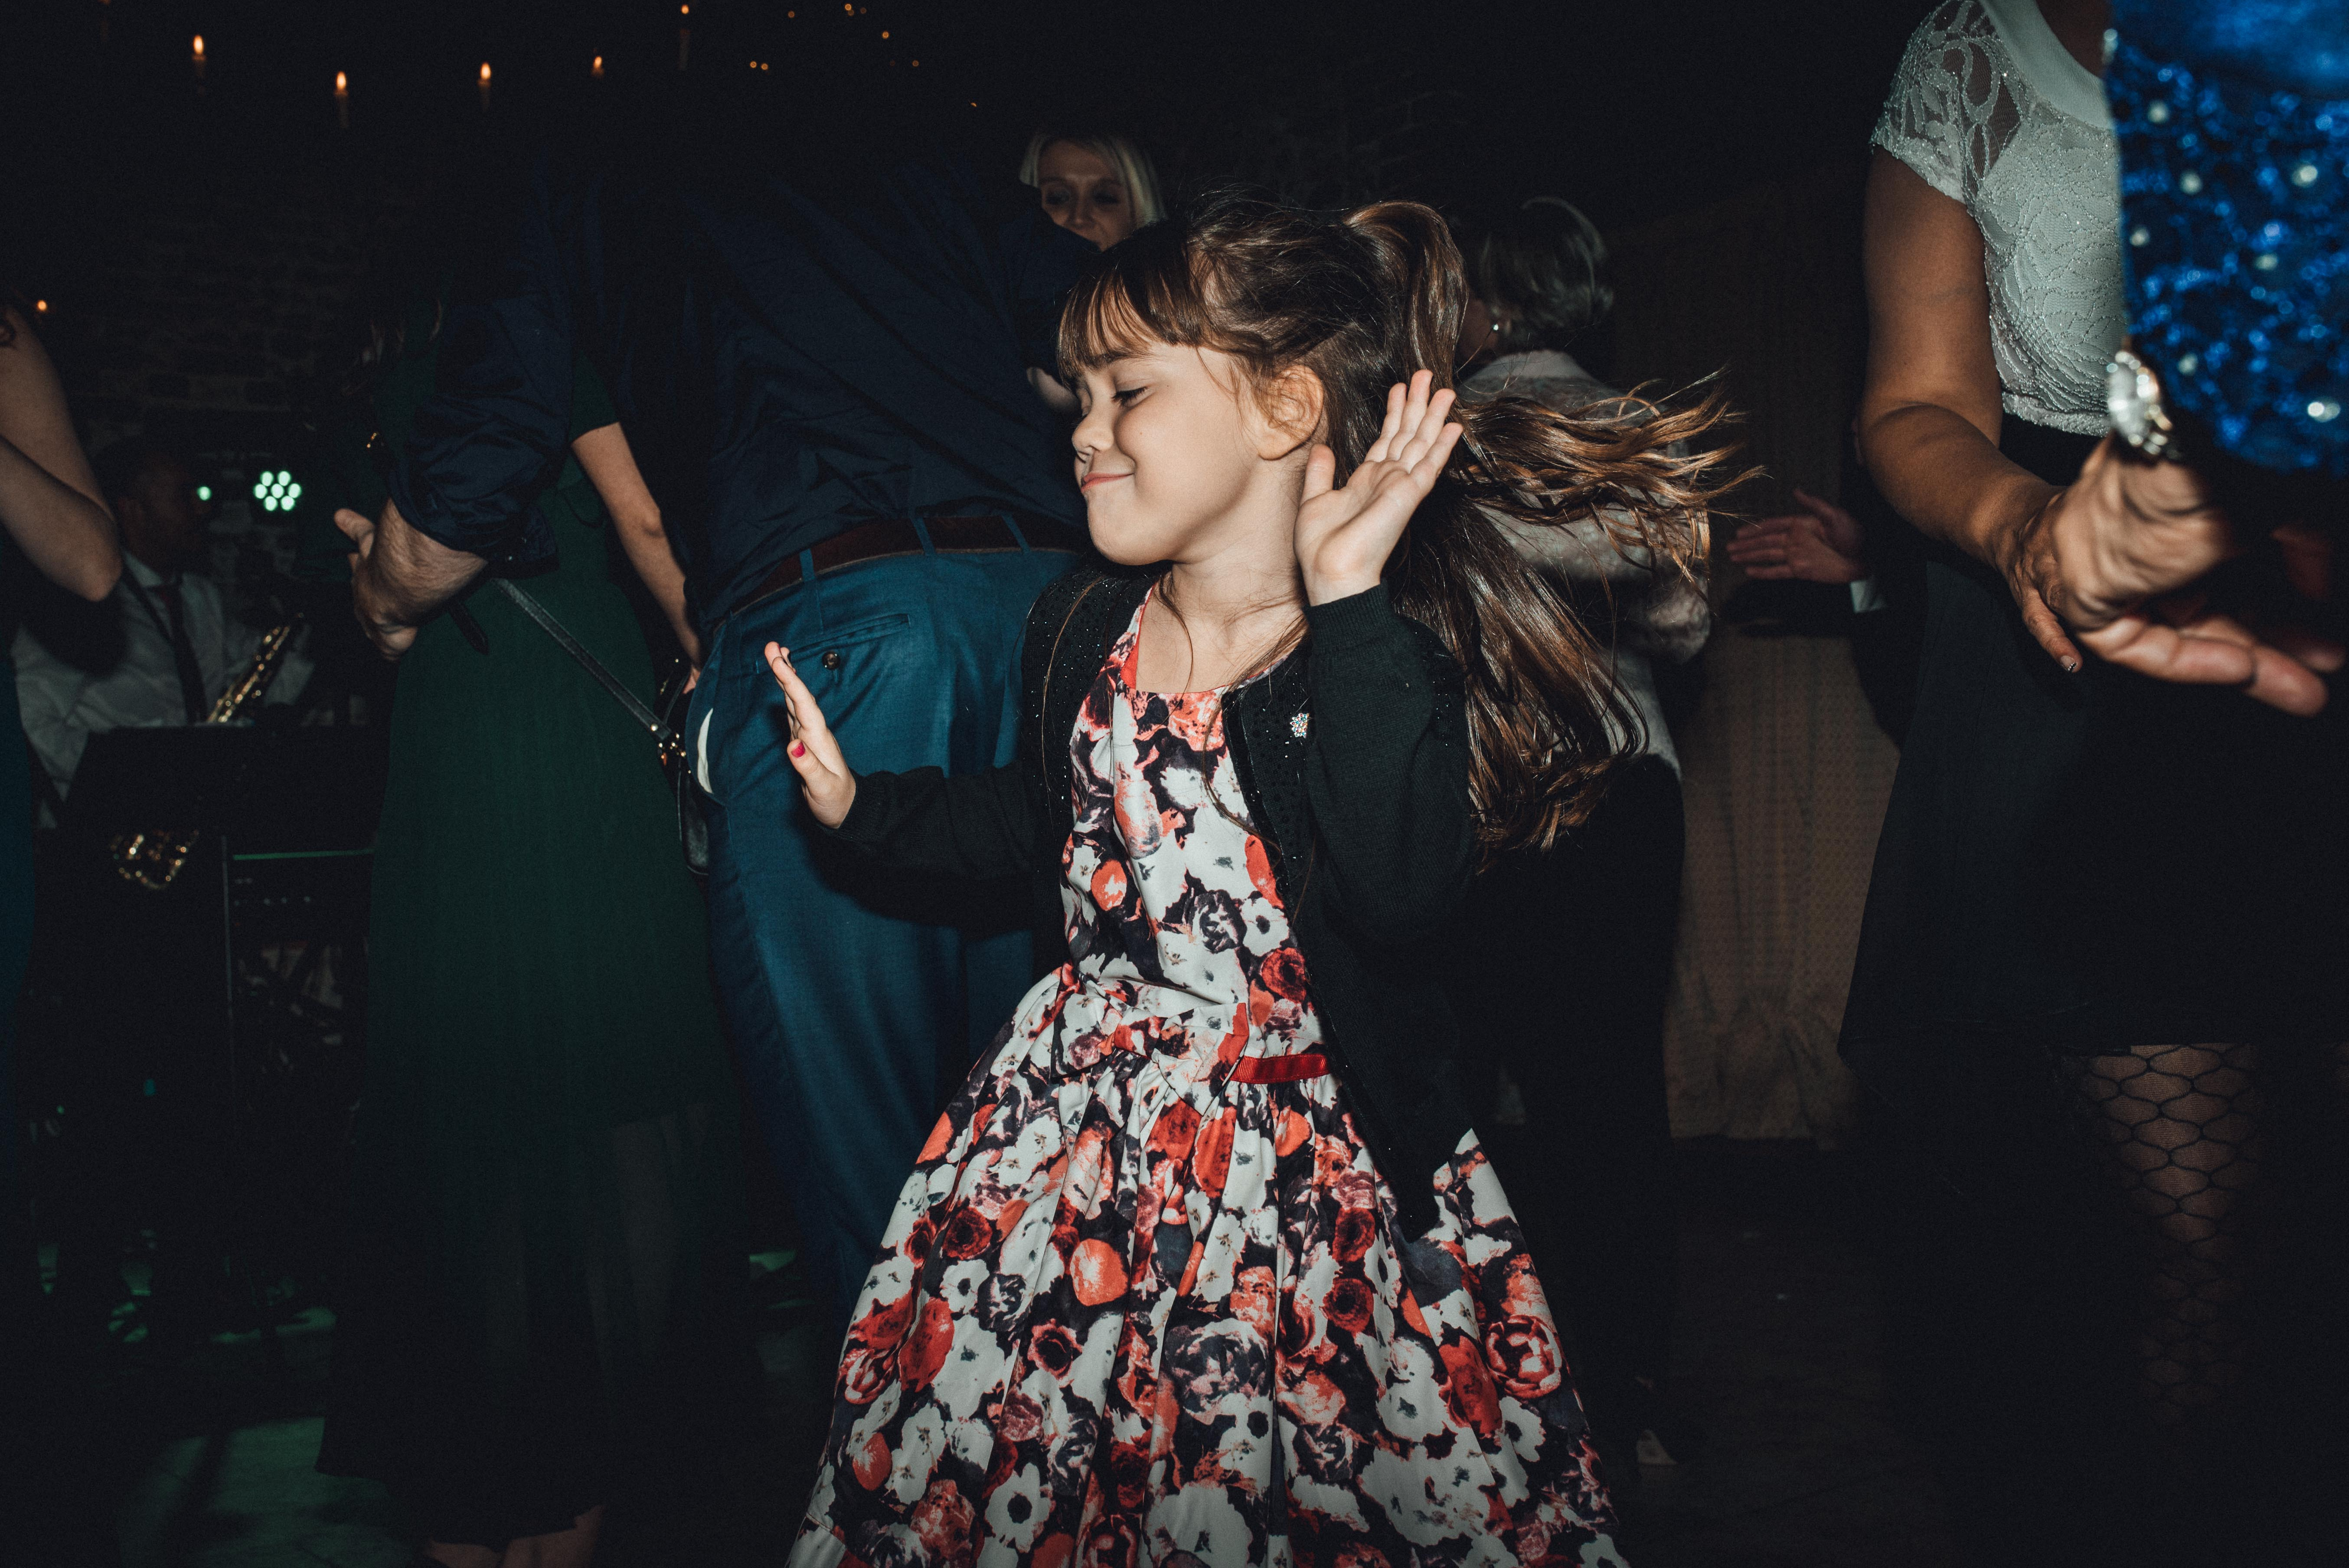 Young girl on the dance floor. Fun documentary wedding photography